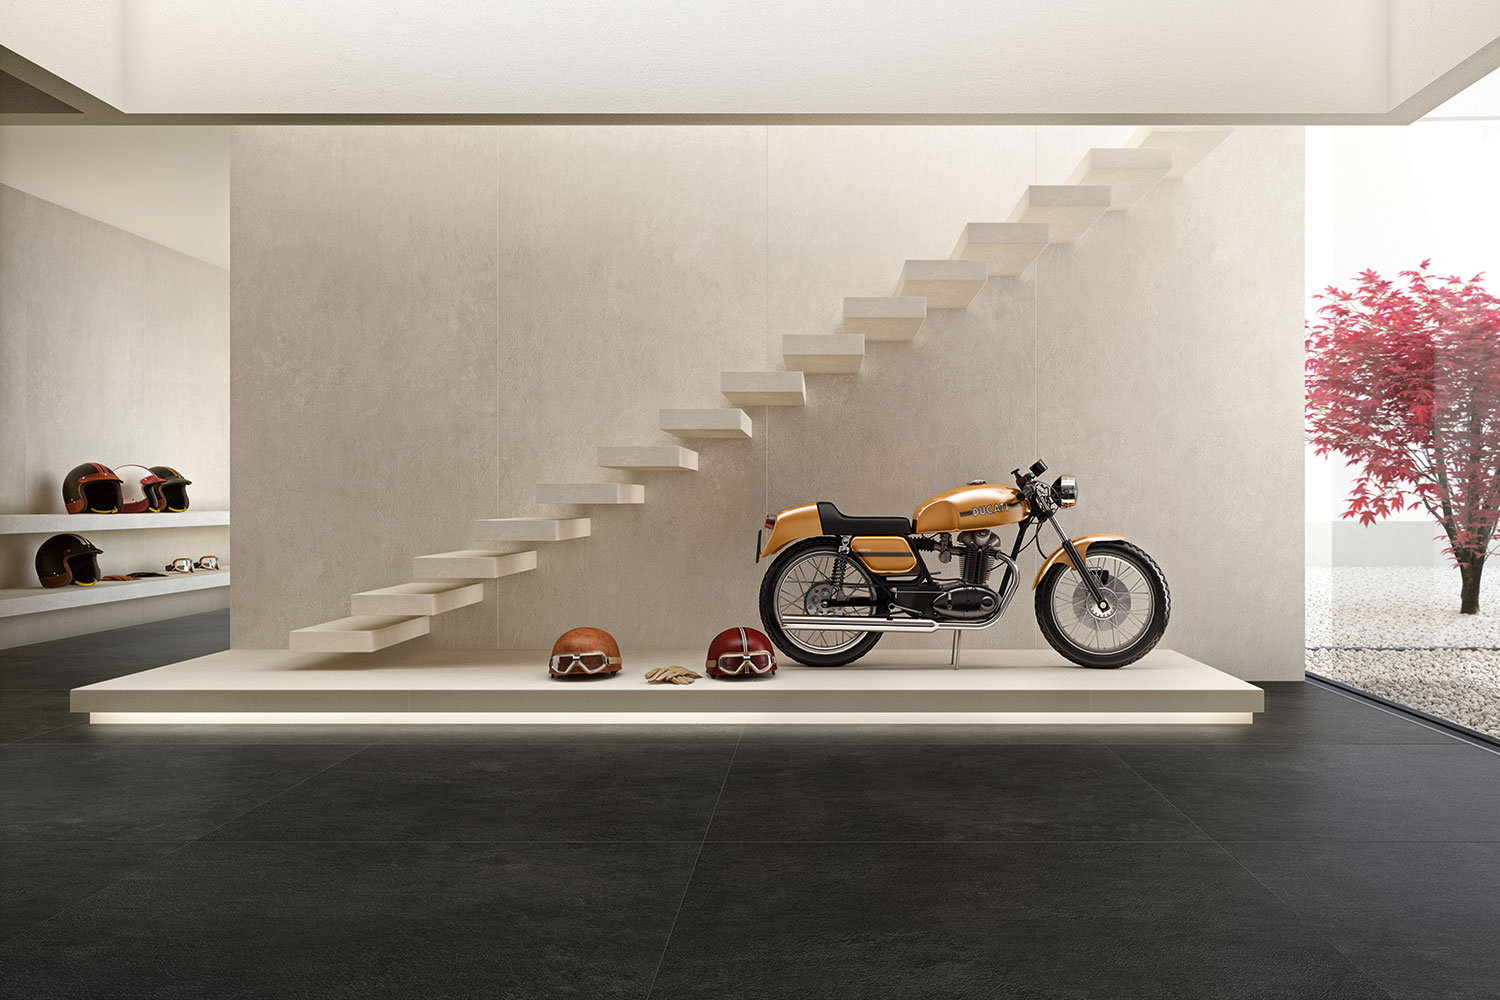 porcelain-wall-tiles-with-ducati-display-bike-and-helmets